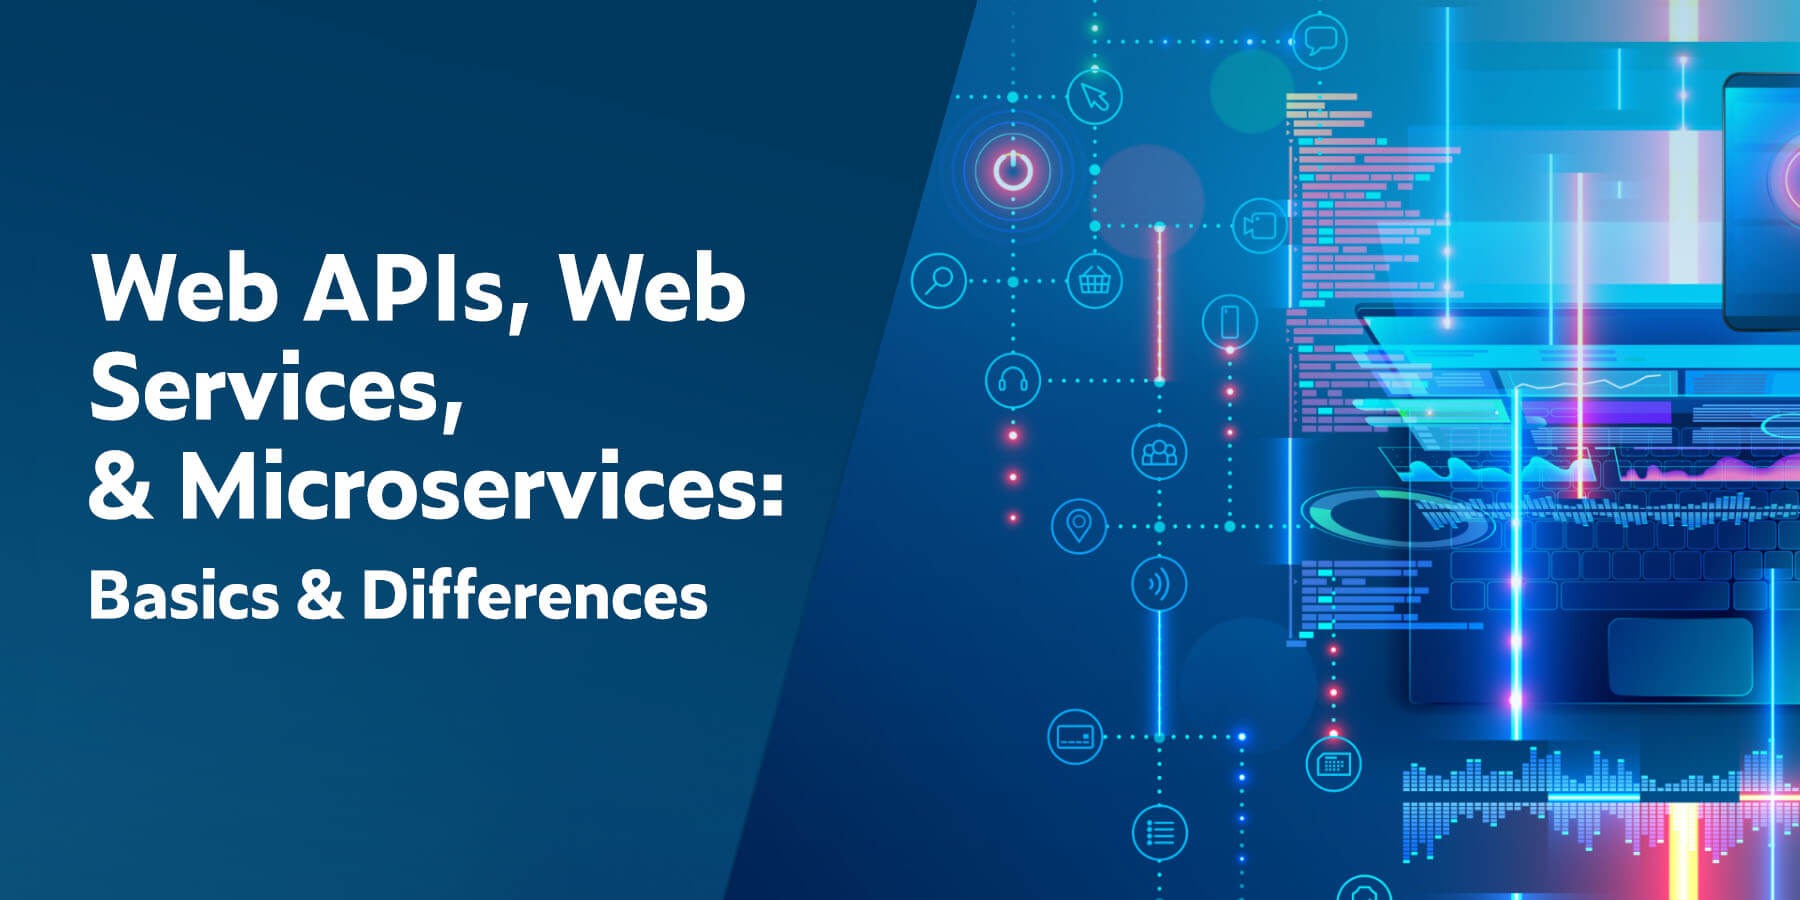 Web APIs, Web Services, & Microservices: Basics & Differences